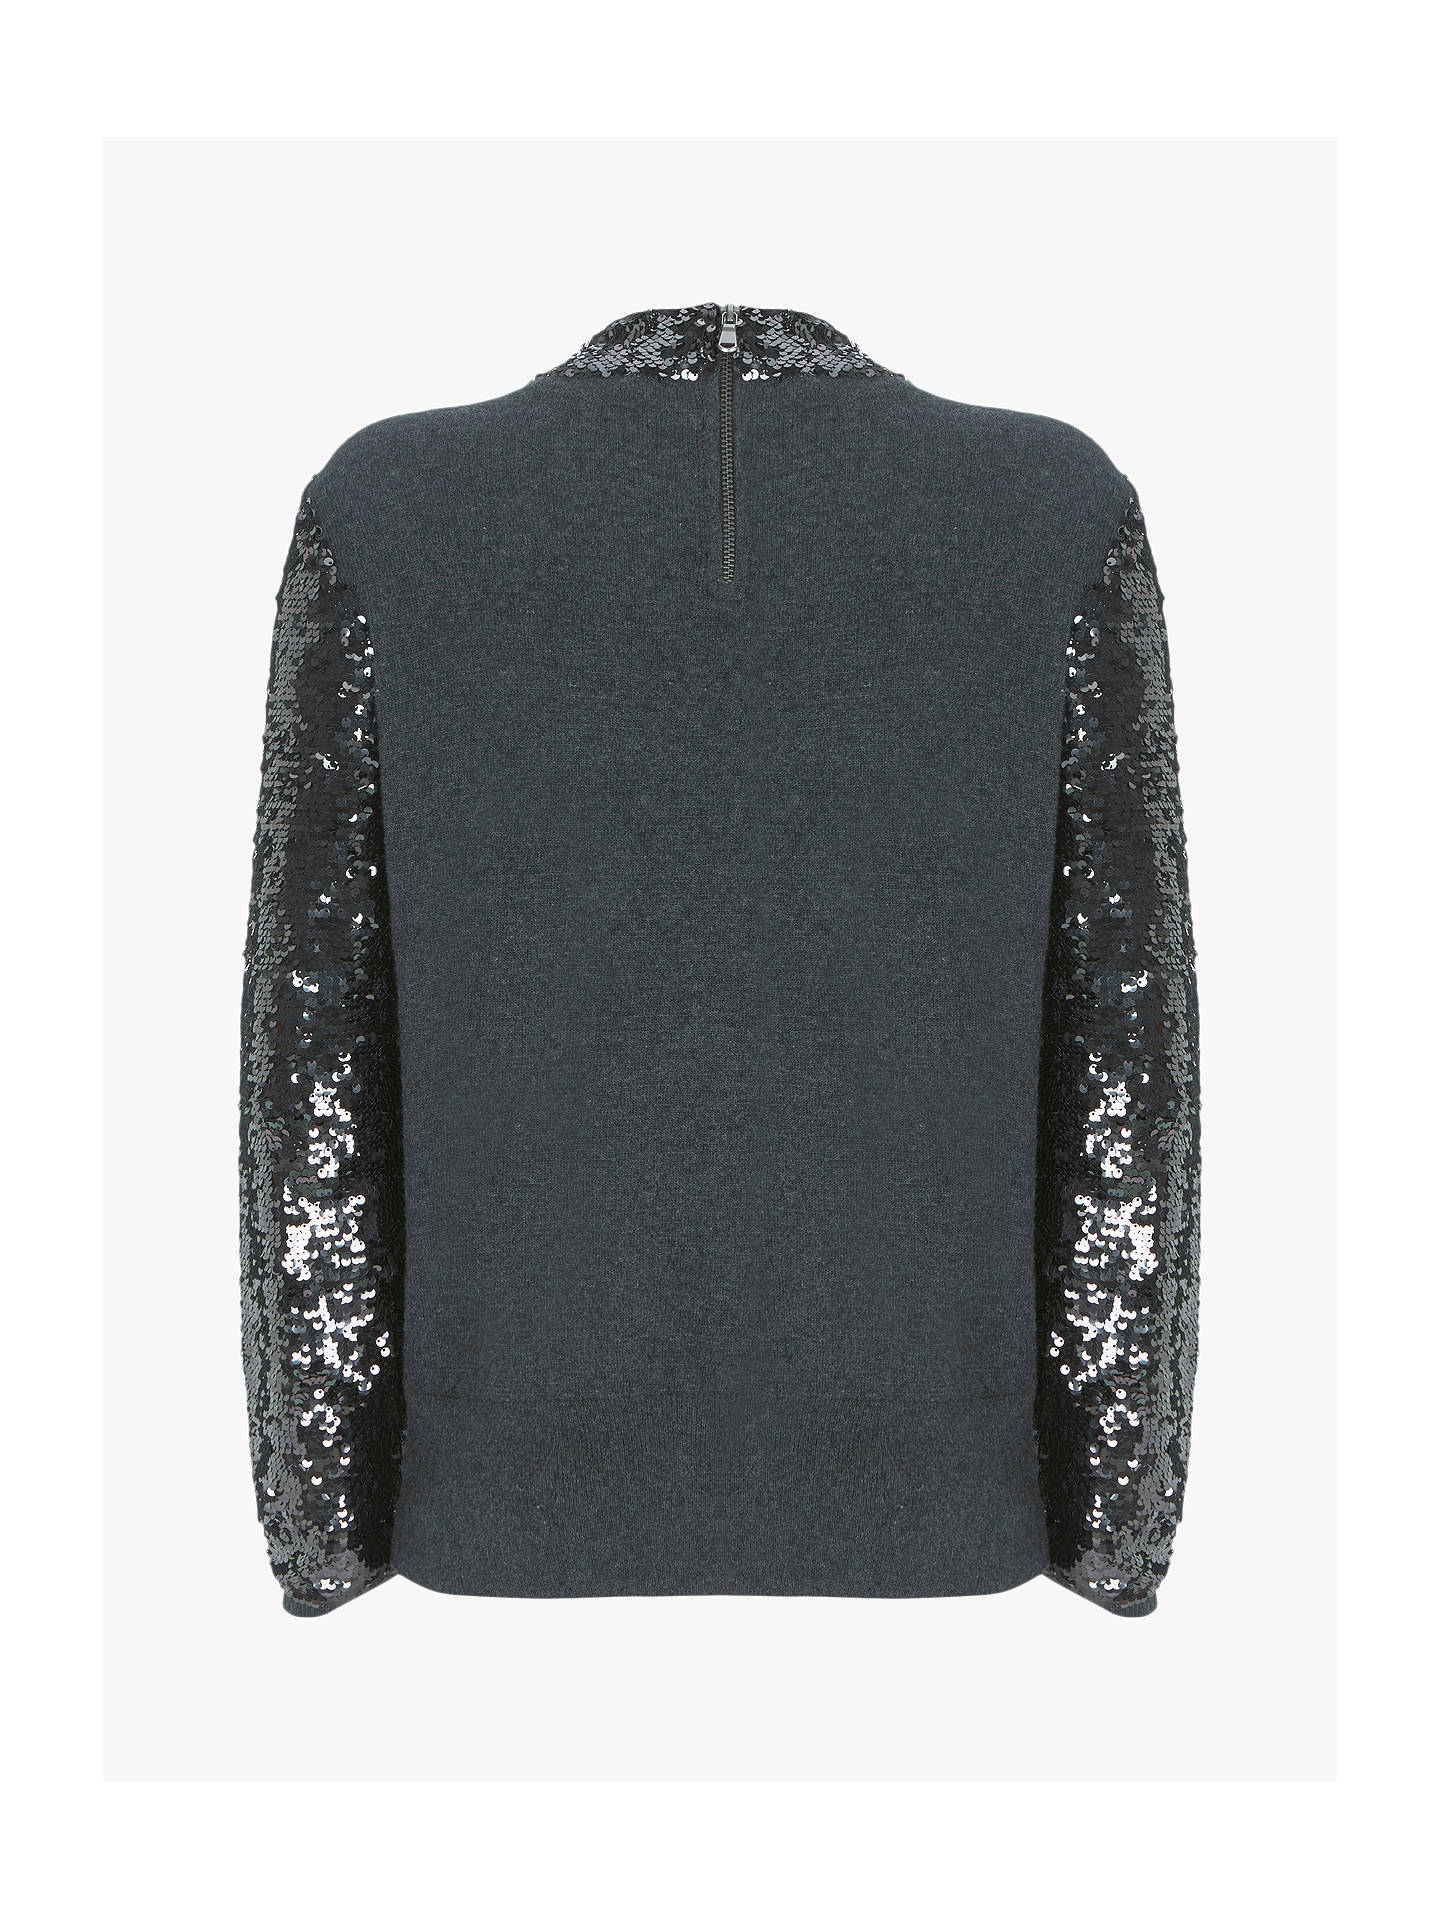 £79 Mint Velvet embroidered floral sleeves knit sweatshirt jumper NEW! Chic!